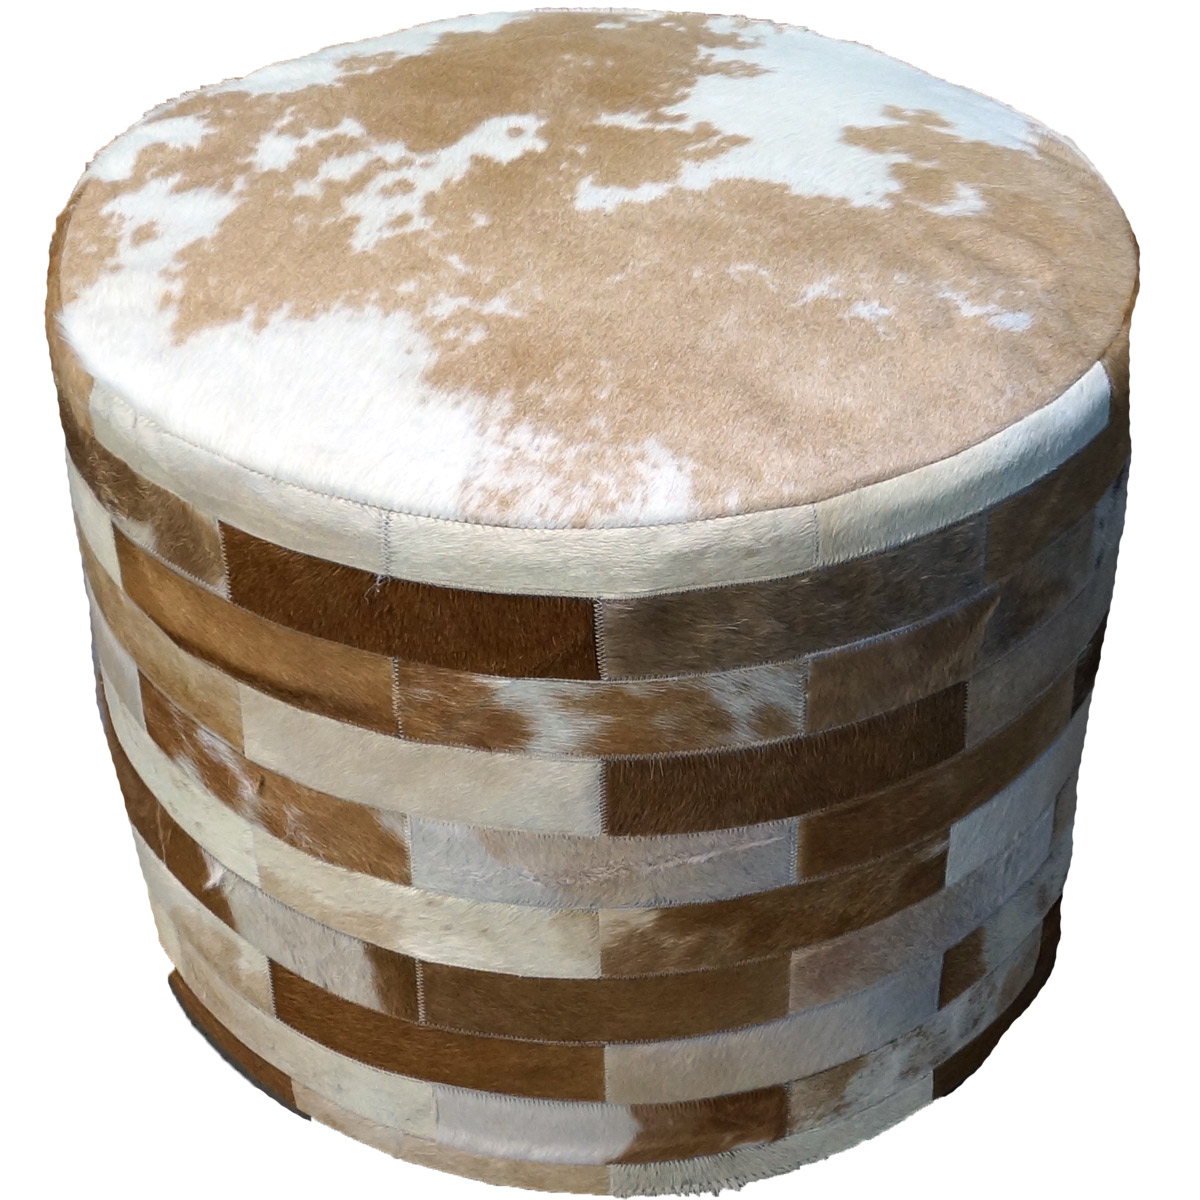 Light Brown Round Cowhide Ottoman - 24 Inch